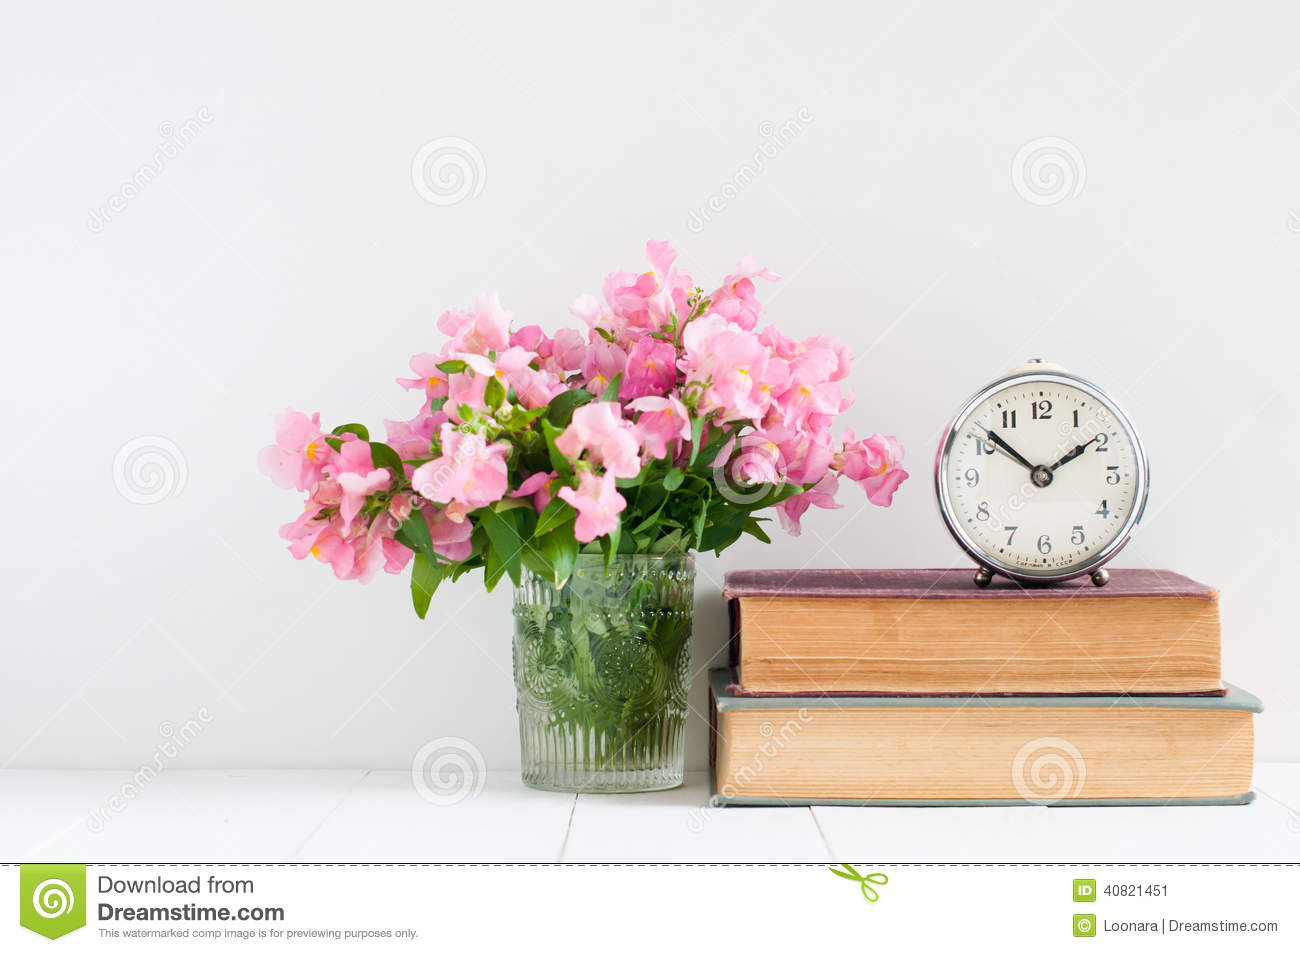 Retro home decor stock photo image 40821451 - Home decor books ...